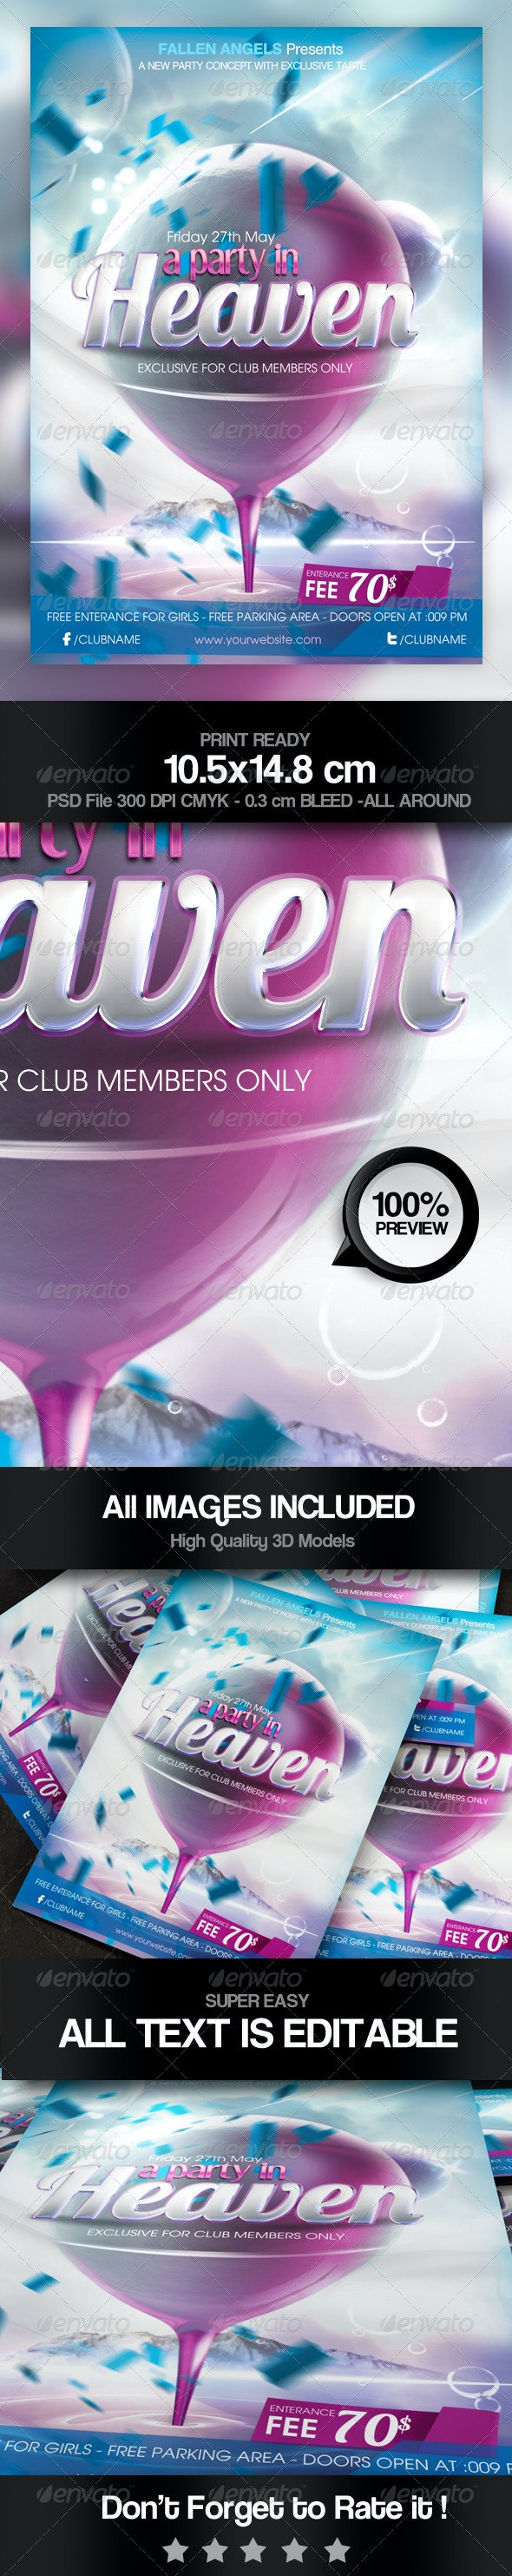 A Party in Heaven Flyer  - Clubs & Parties Events